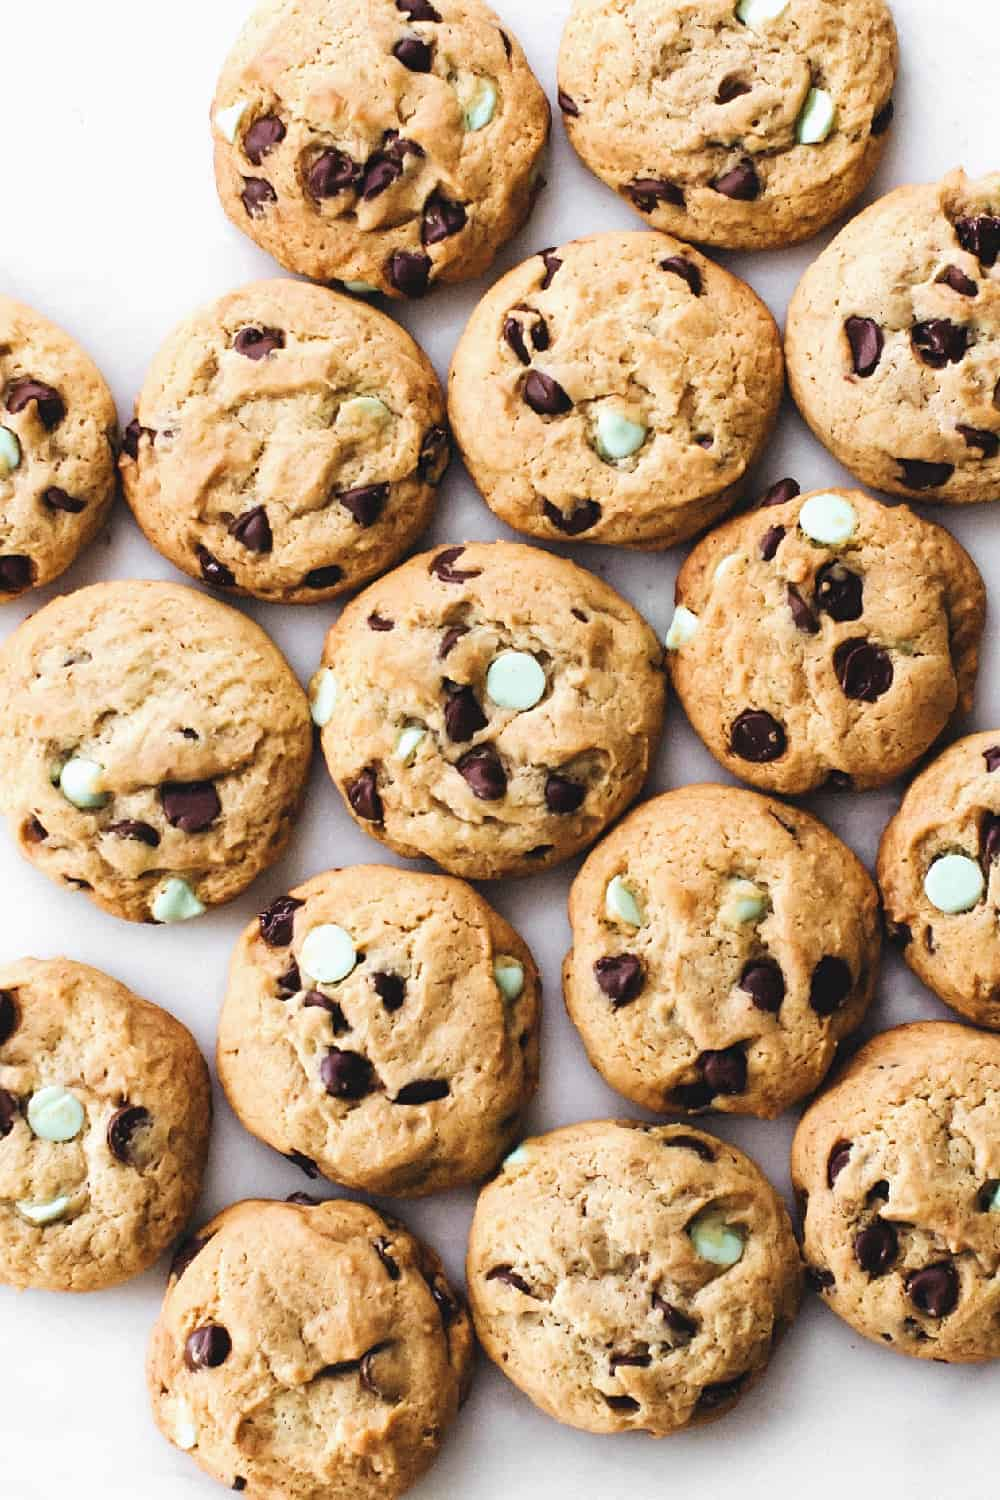 These Chewy Mint Chocolate Chip Cookies are perfect for the holidays or any day!